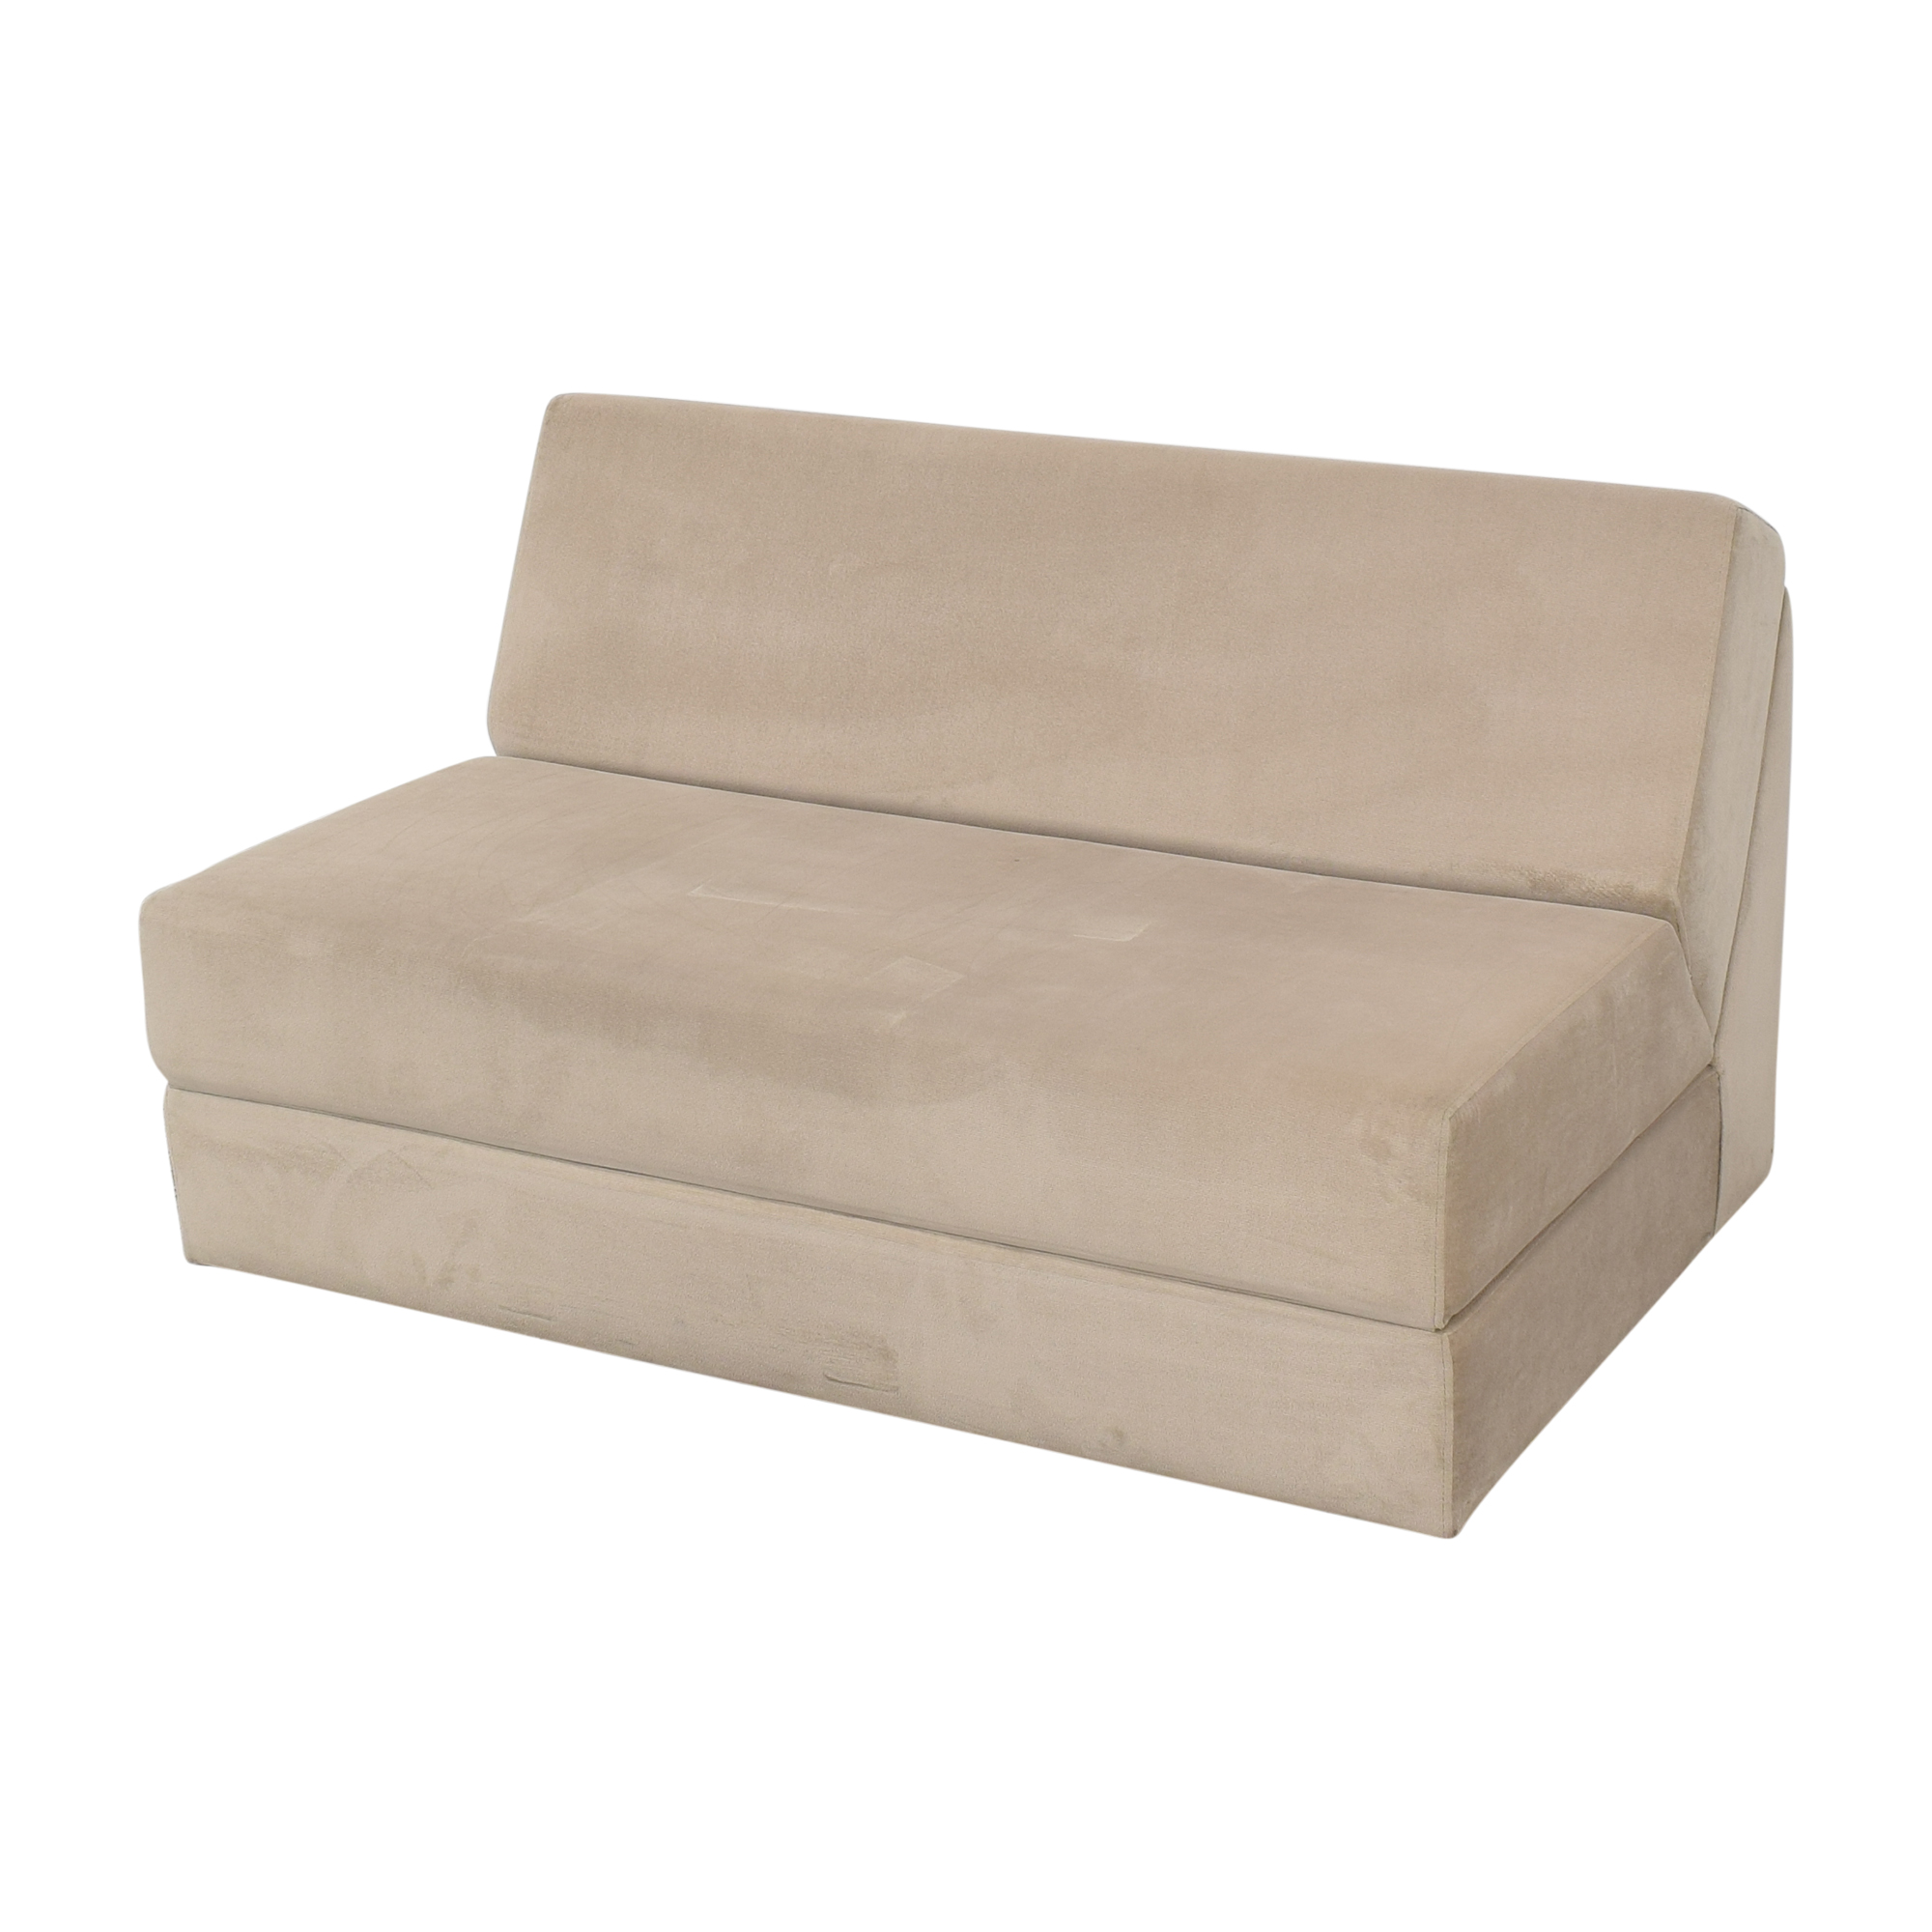 Chaise Lounge Sofa Bed dimensions